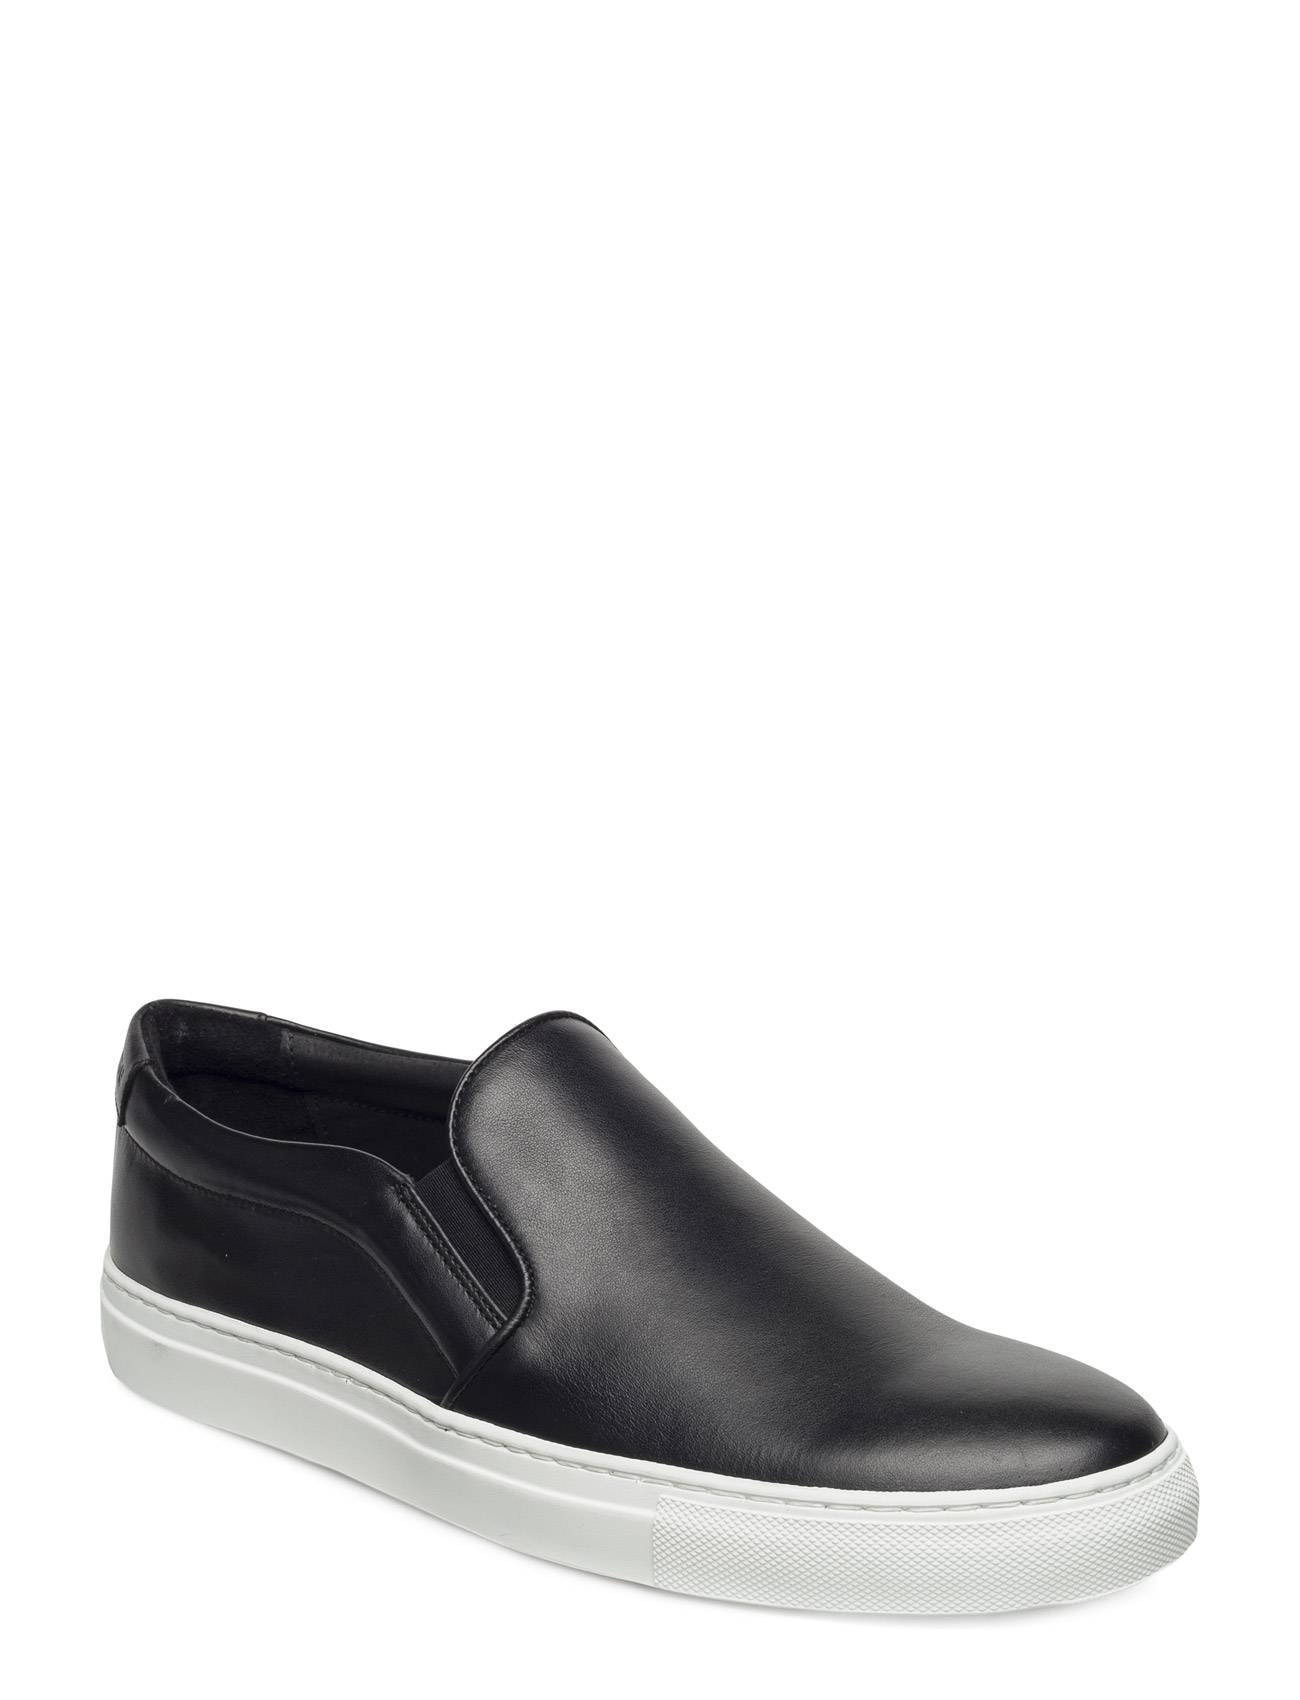 J. Lindeberg Slip-On Sneaker Combo Leather